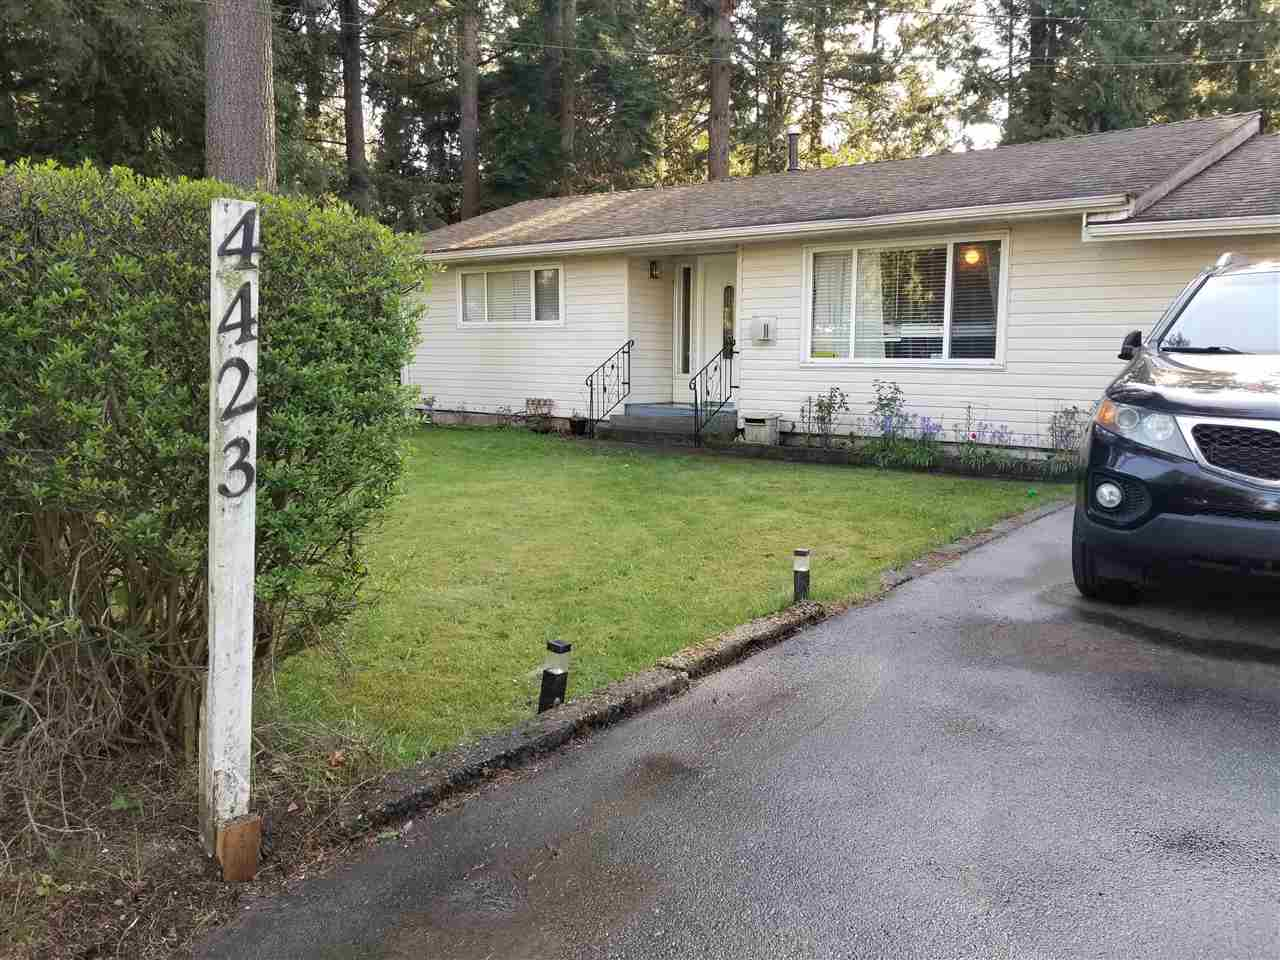 4423 200 STREET - Brookswood Langley House/Single Family for sale, 3 Bedrooms (R2572298) - #2